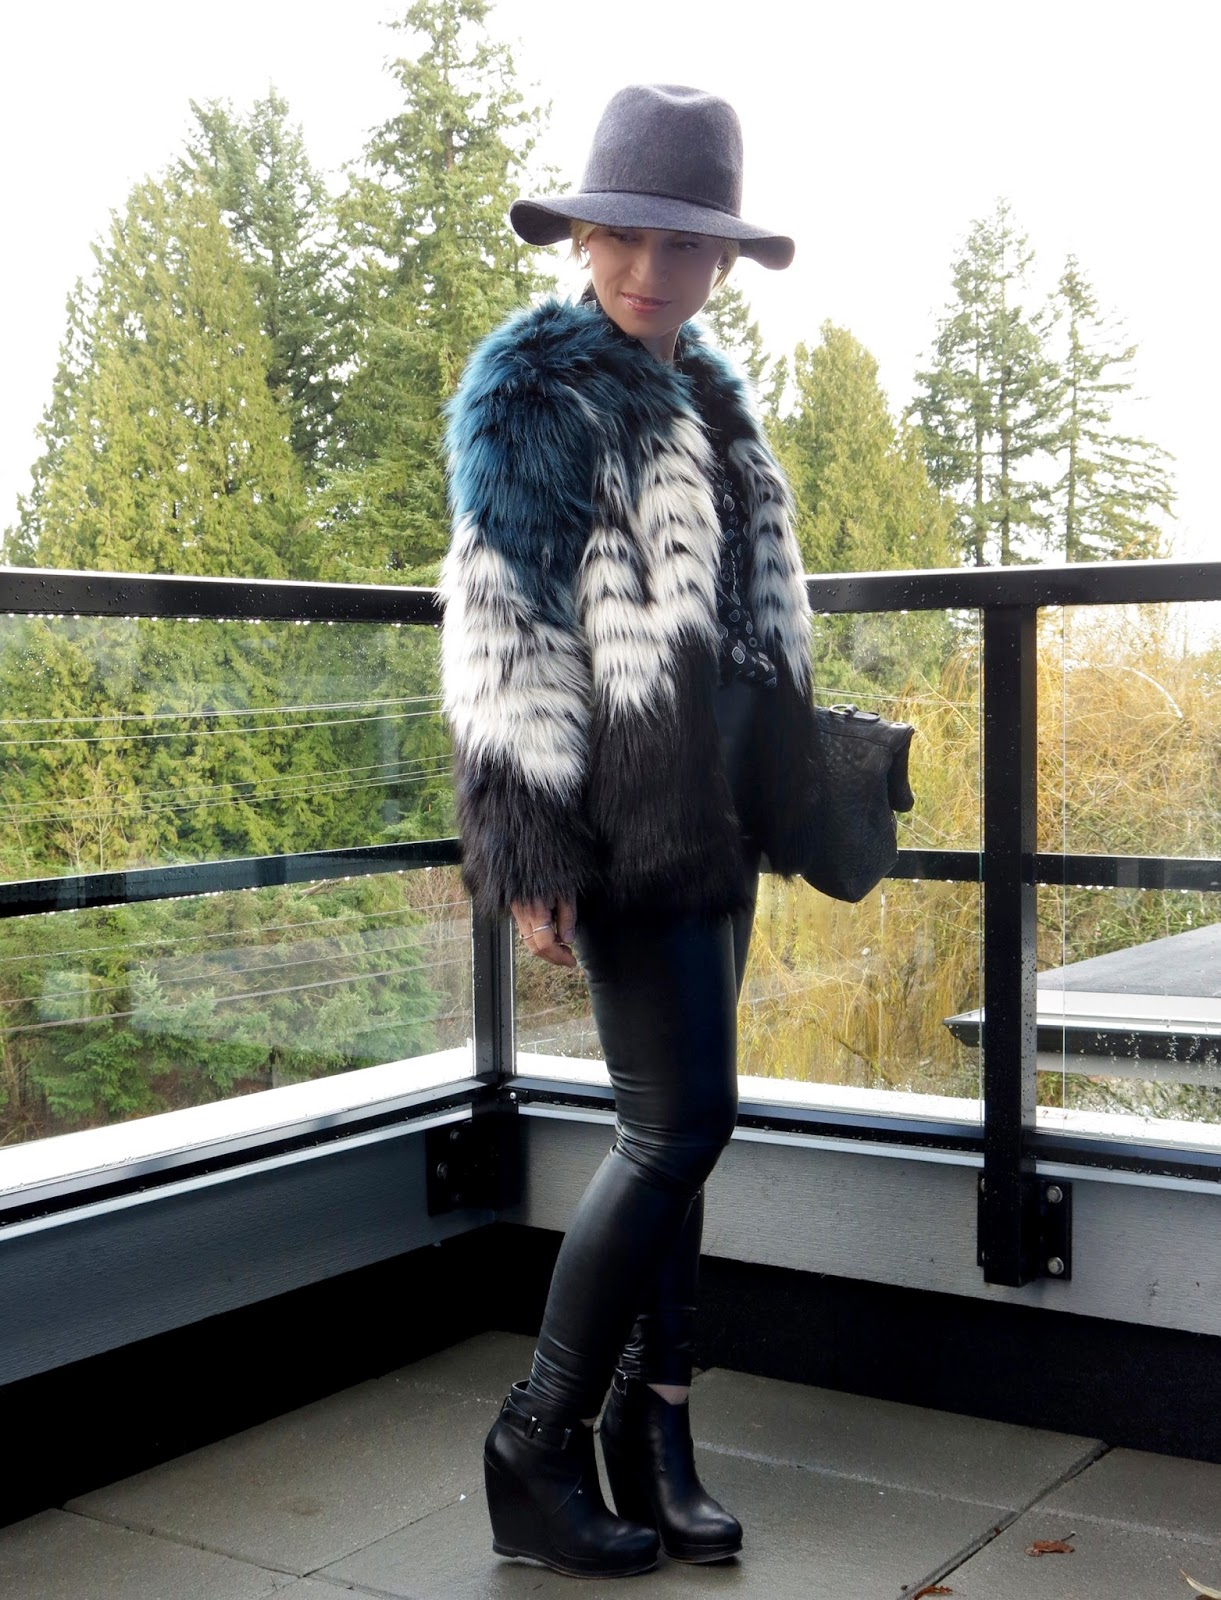 Fur baby:  faux-fur jacket with a patterned shirt, vegan leather leggings, wedge booties, and floppy hat